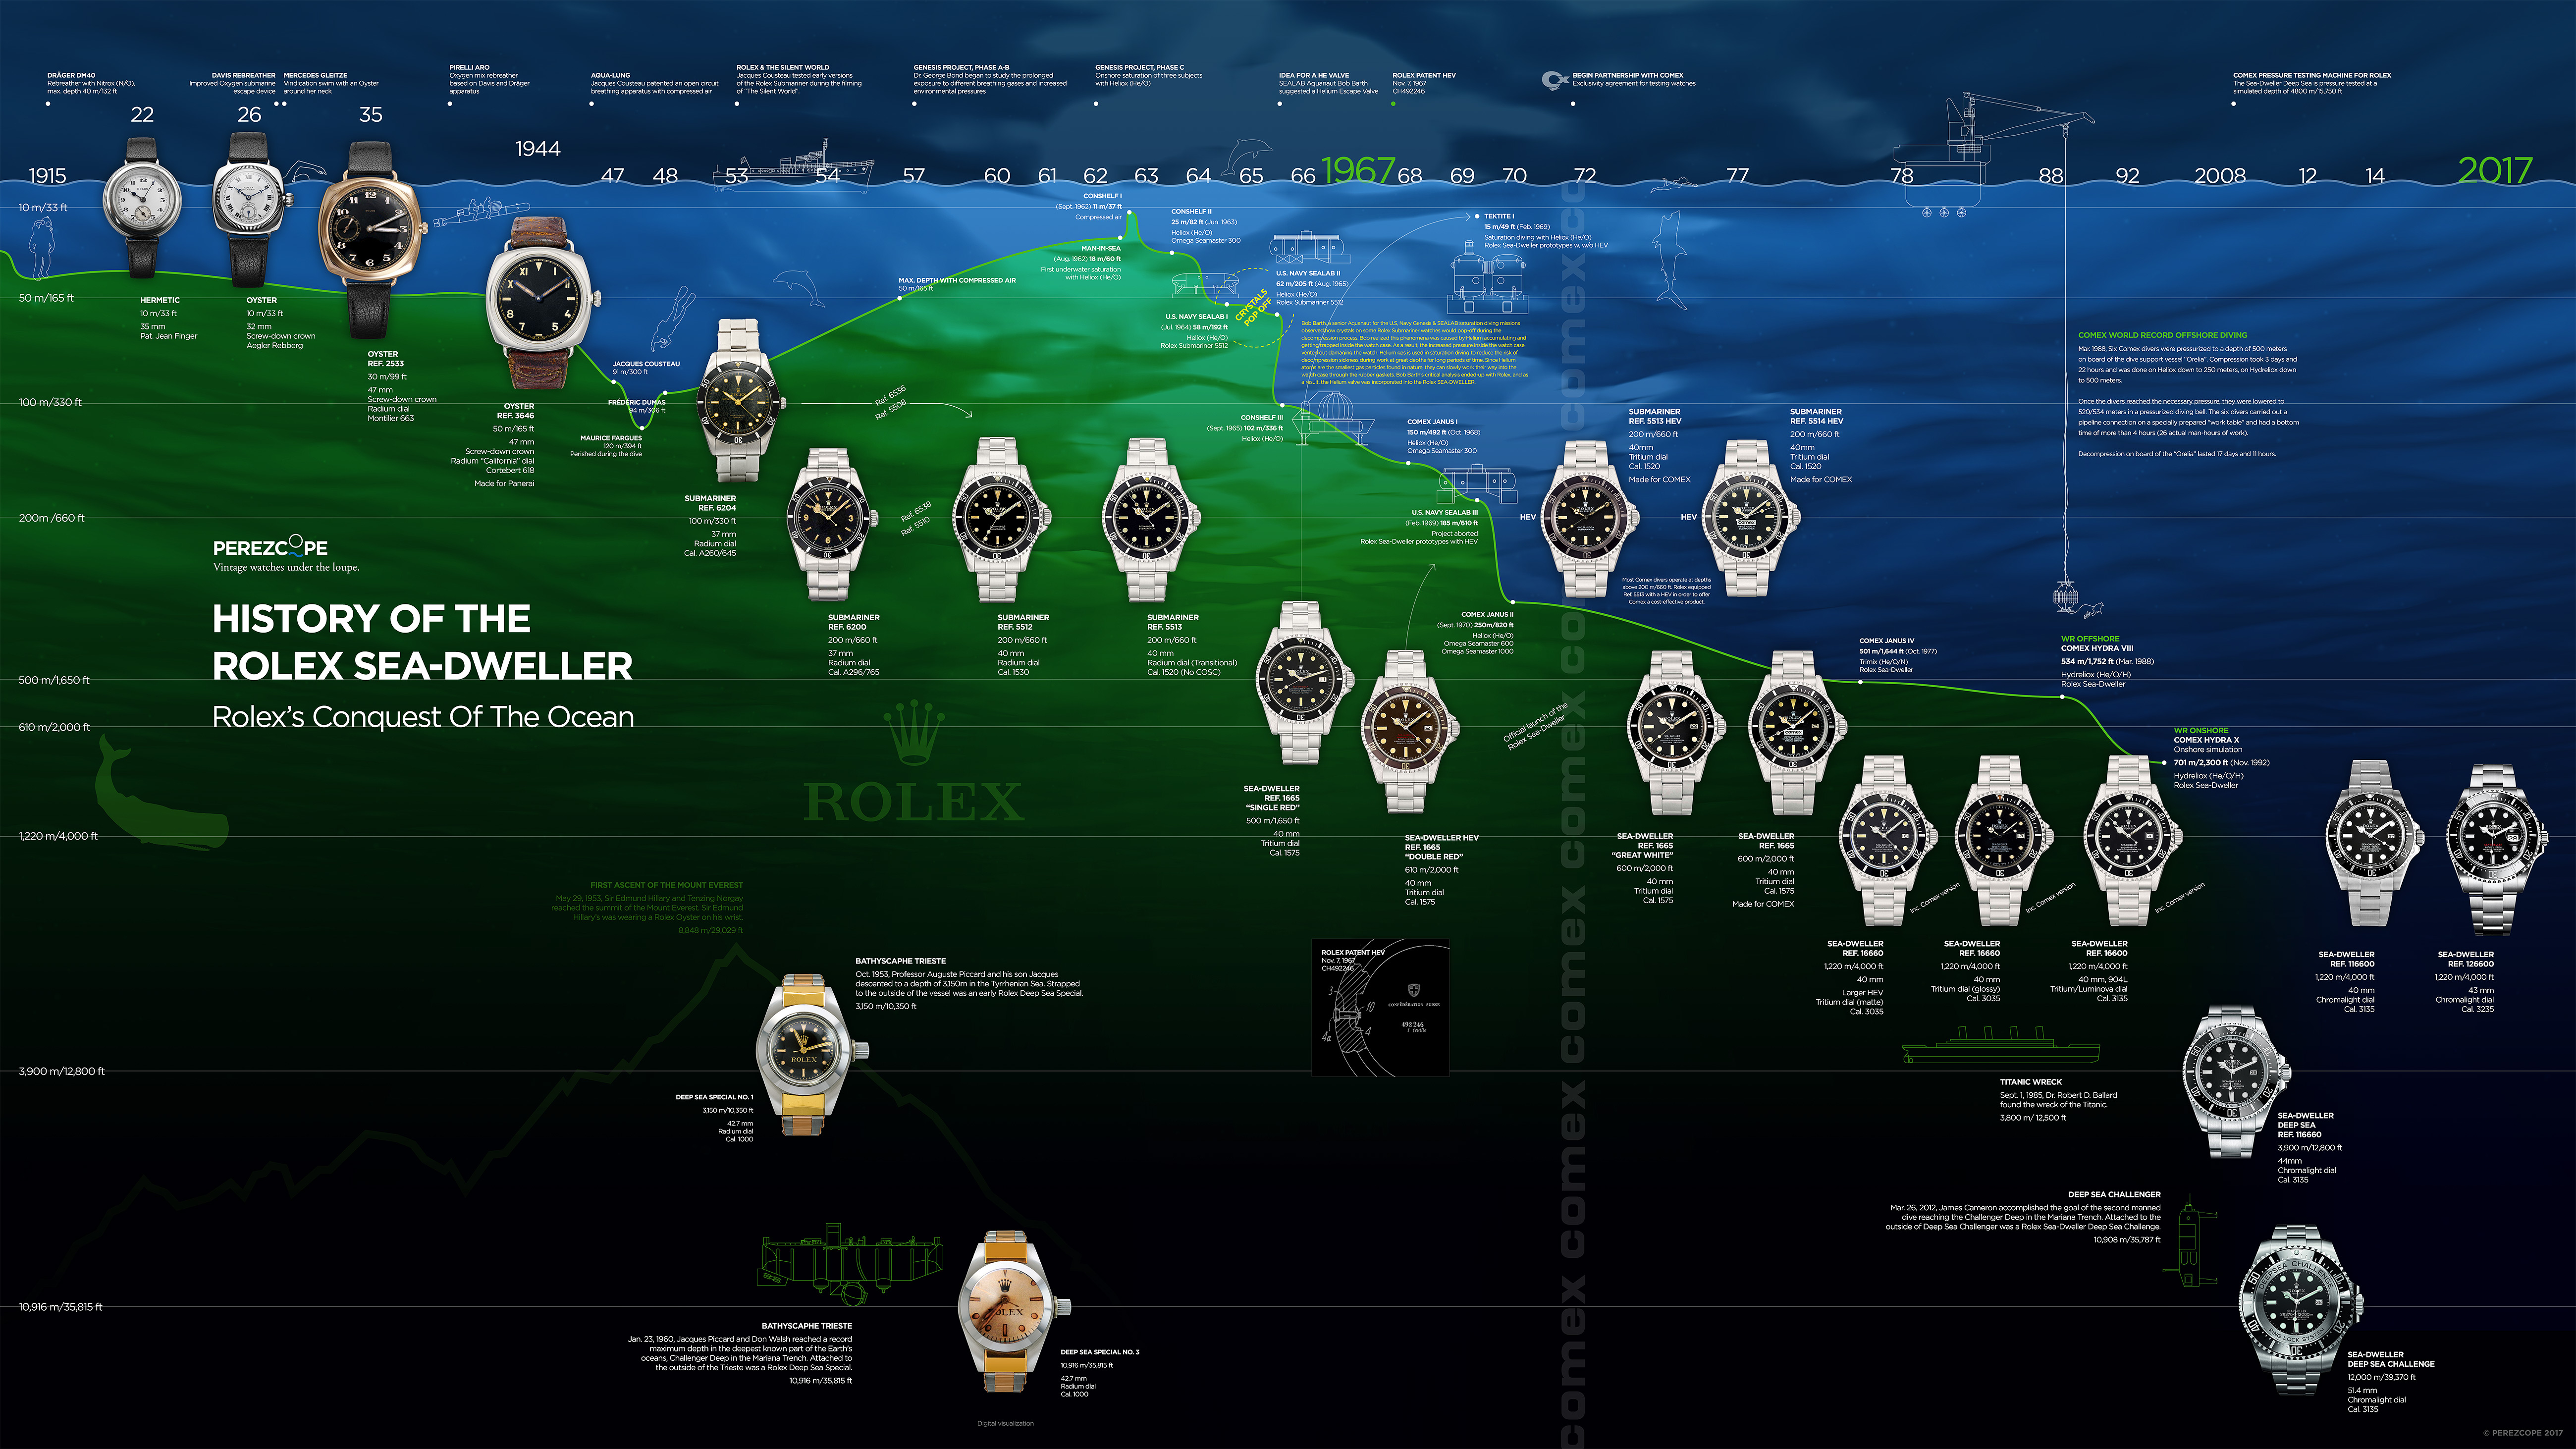 History of the Rolex Sea-Dweller